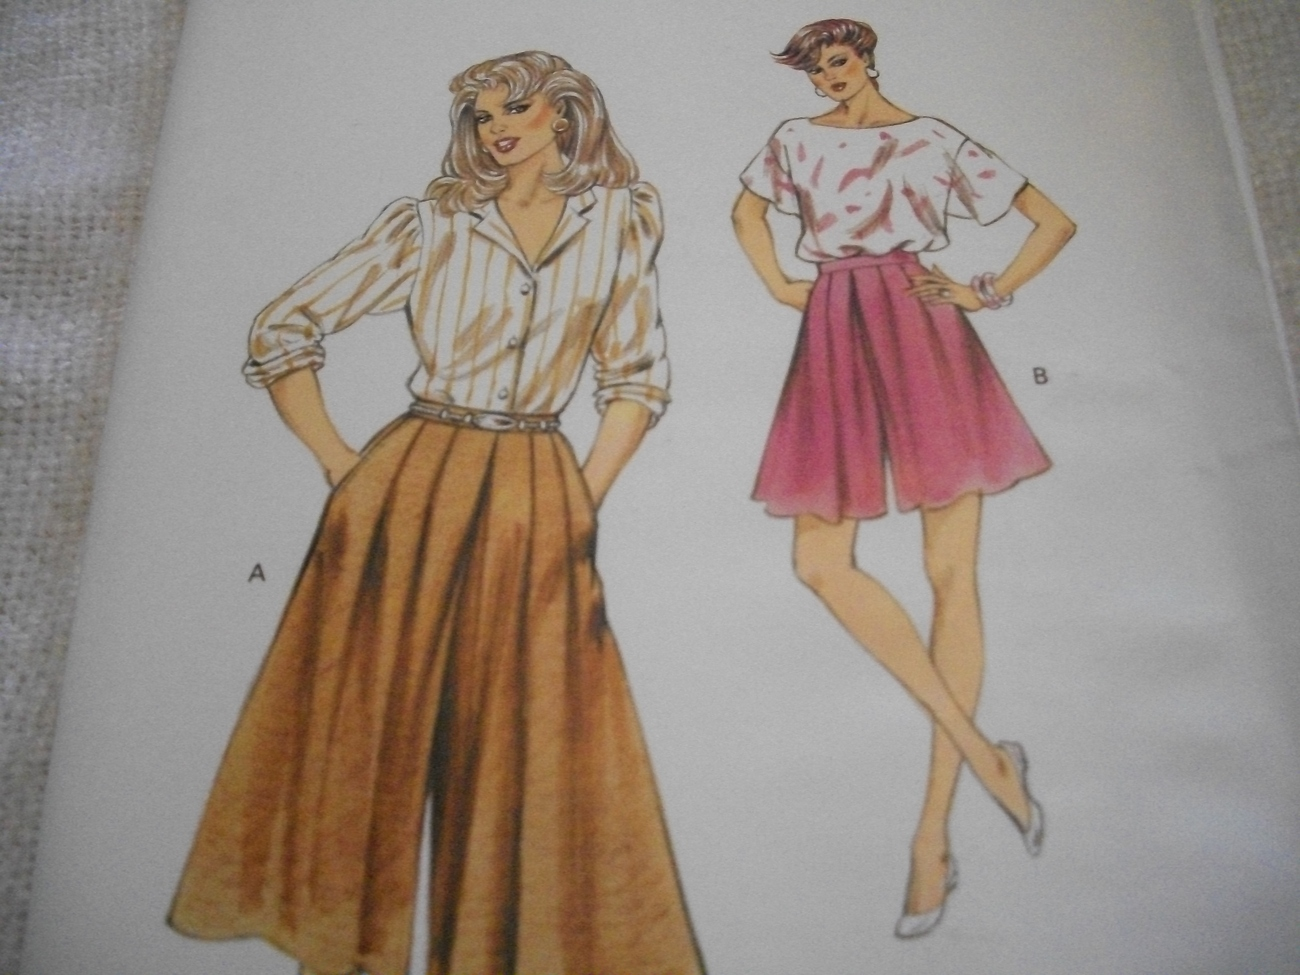 Primary image for Misses' Culotte Dress Pattern Kwik Sew 1424